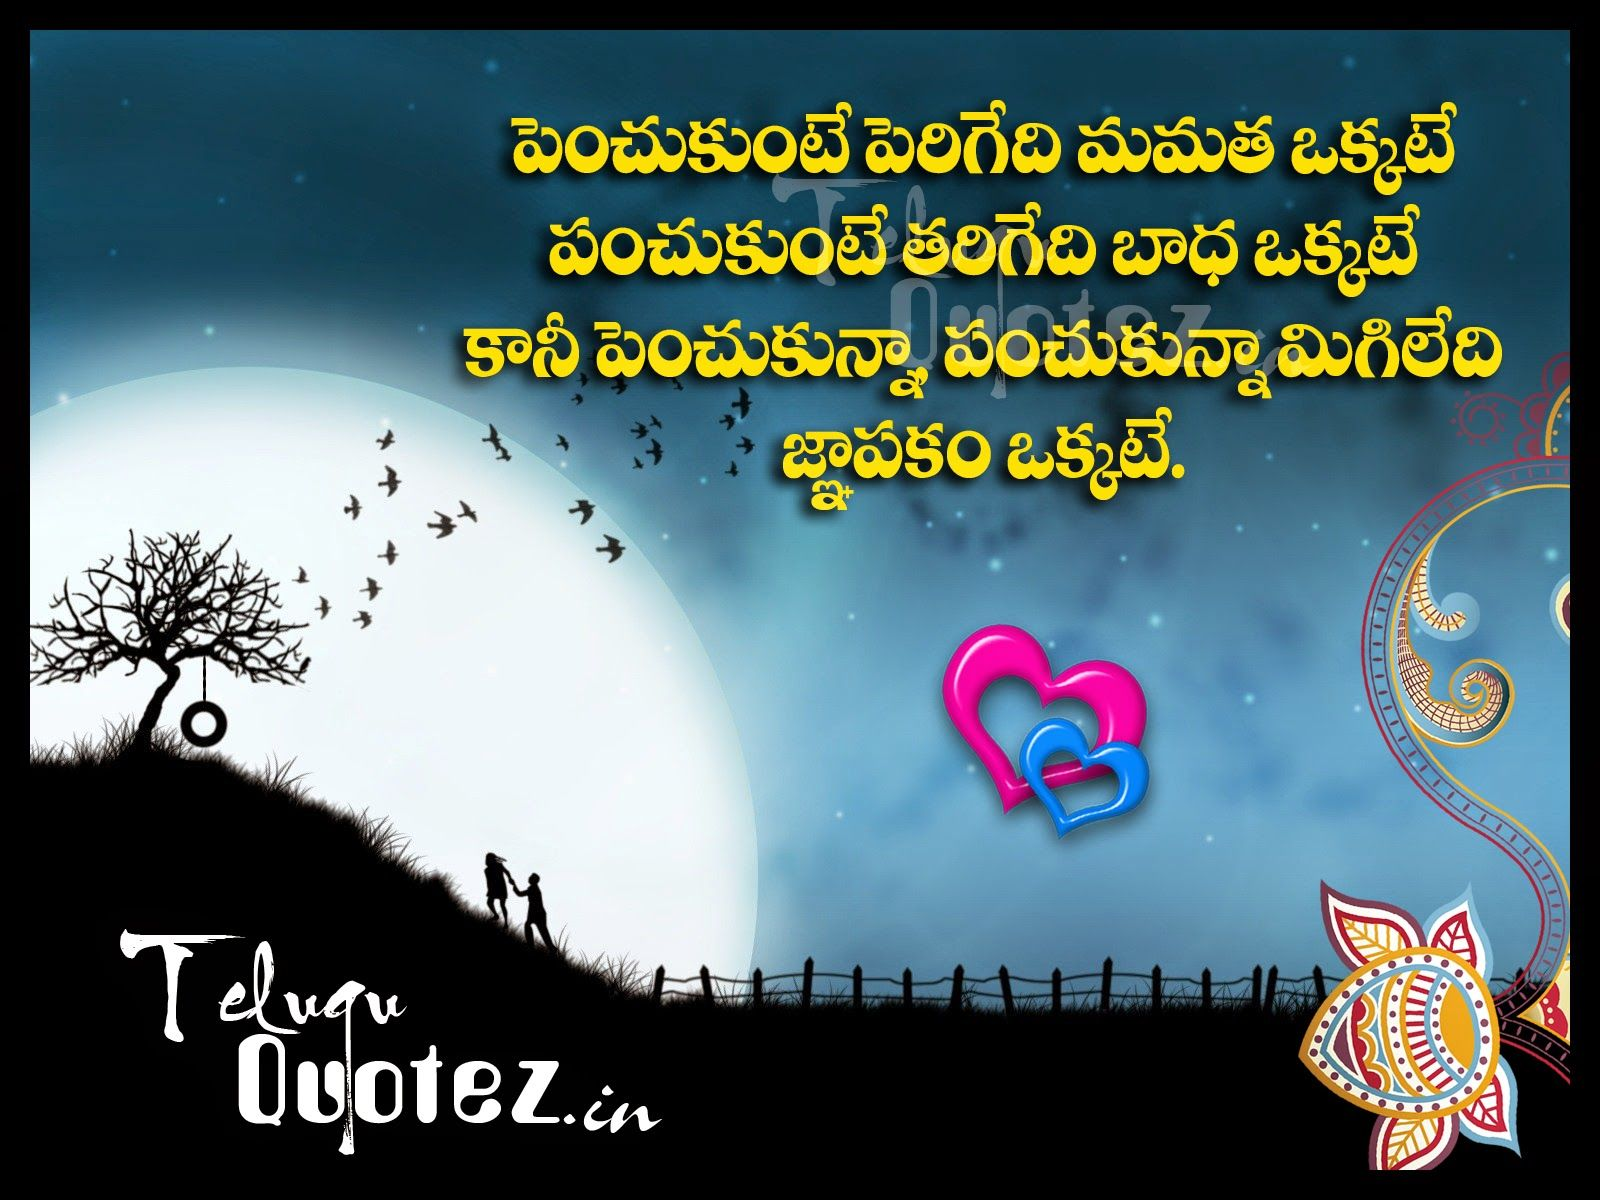 Teluguquotezin Telugu Inspirational Quotes About Love Quotes